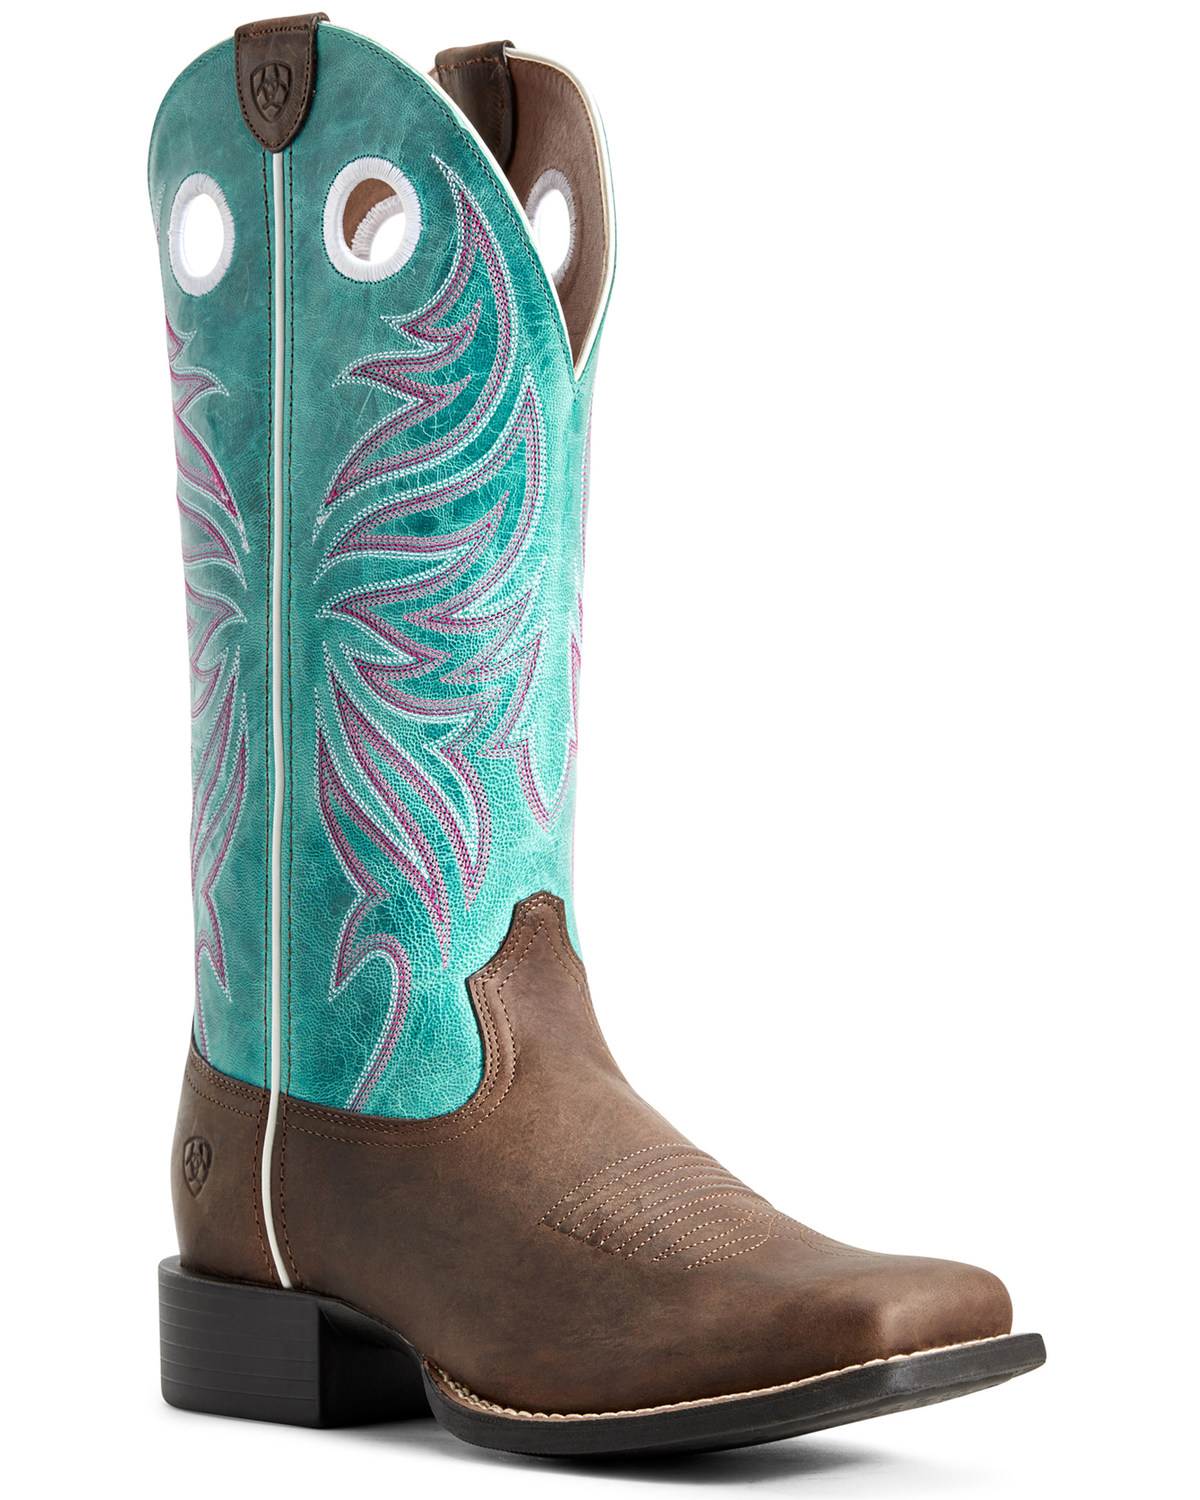 22b490d1af7 Ariat Women's Round Up Ryder Western Boots - Wide Square Toe